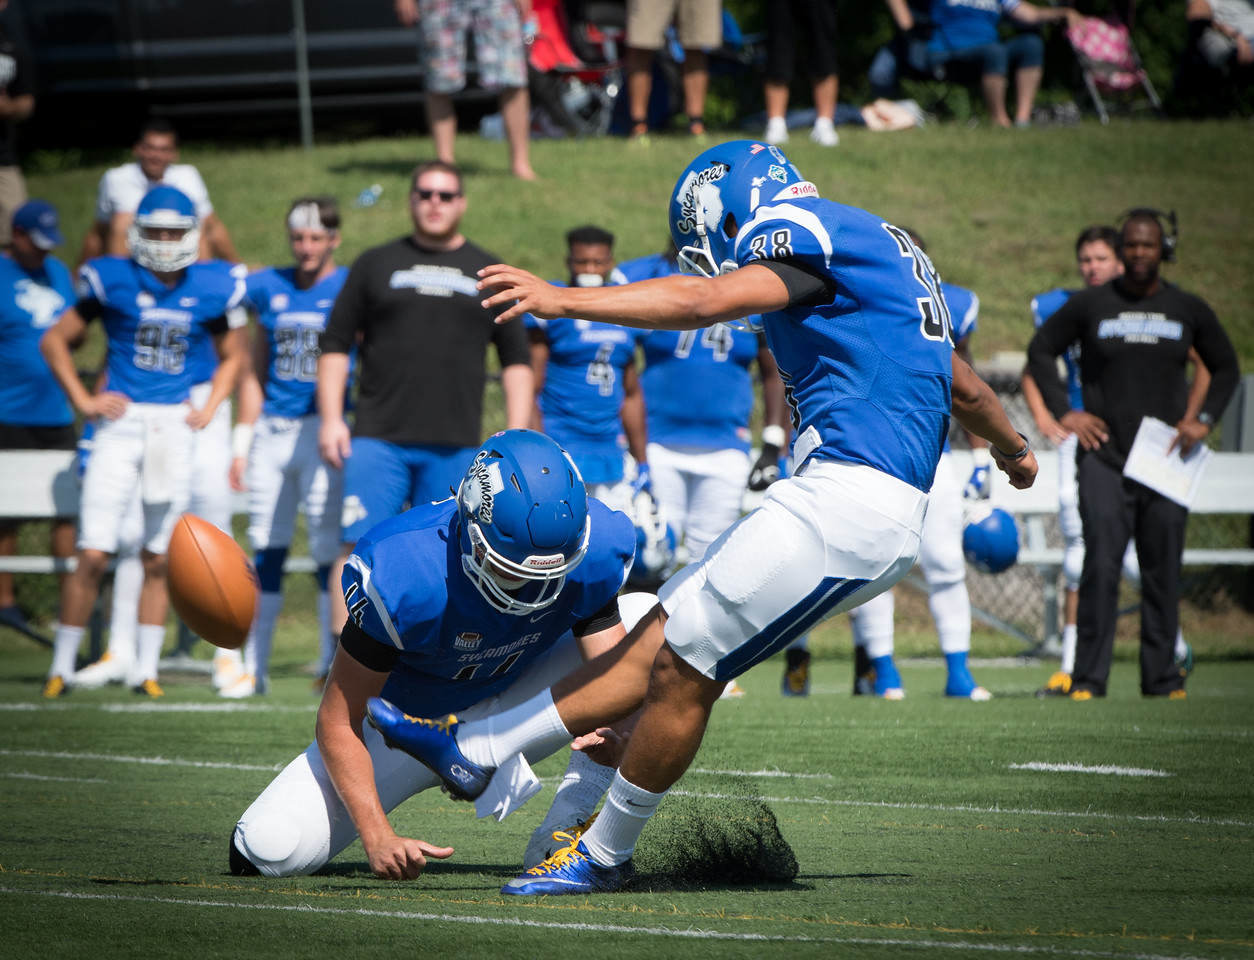 09_03_16_football_ISU_vs_Butler-2762